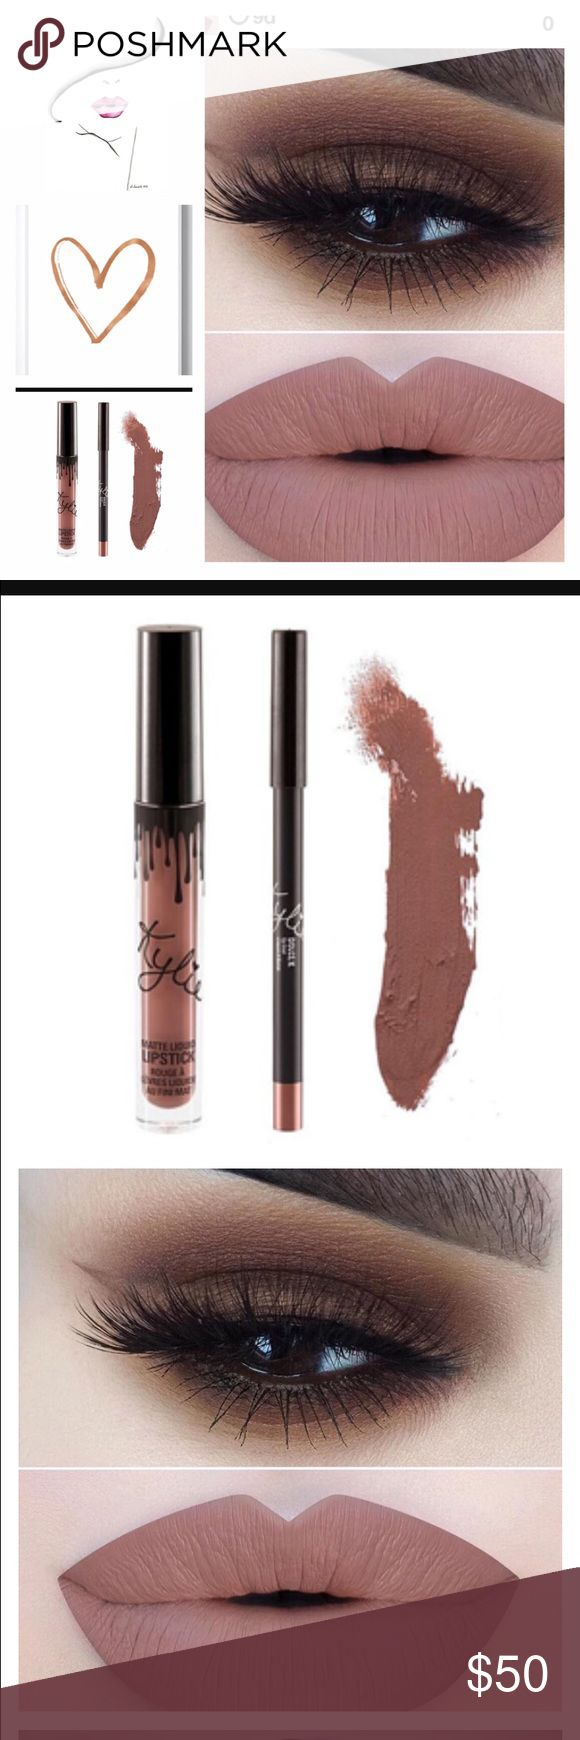 DOLCE K LIPKIT Kylie Jenner Lipstick  Gorgeous shade and stays on really well. Love this lipstick with a smokey eye.  Each Lipkit comes with the lip pencil and lipstick. Kylie Cosmetics Makeup Lipstick